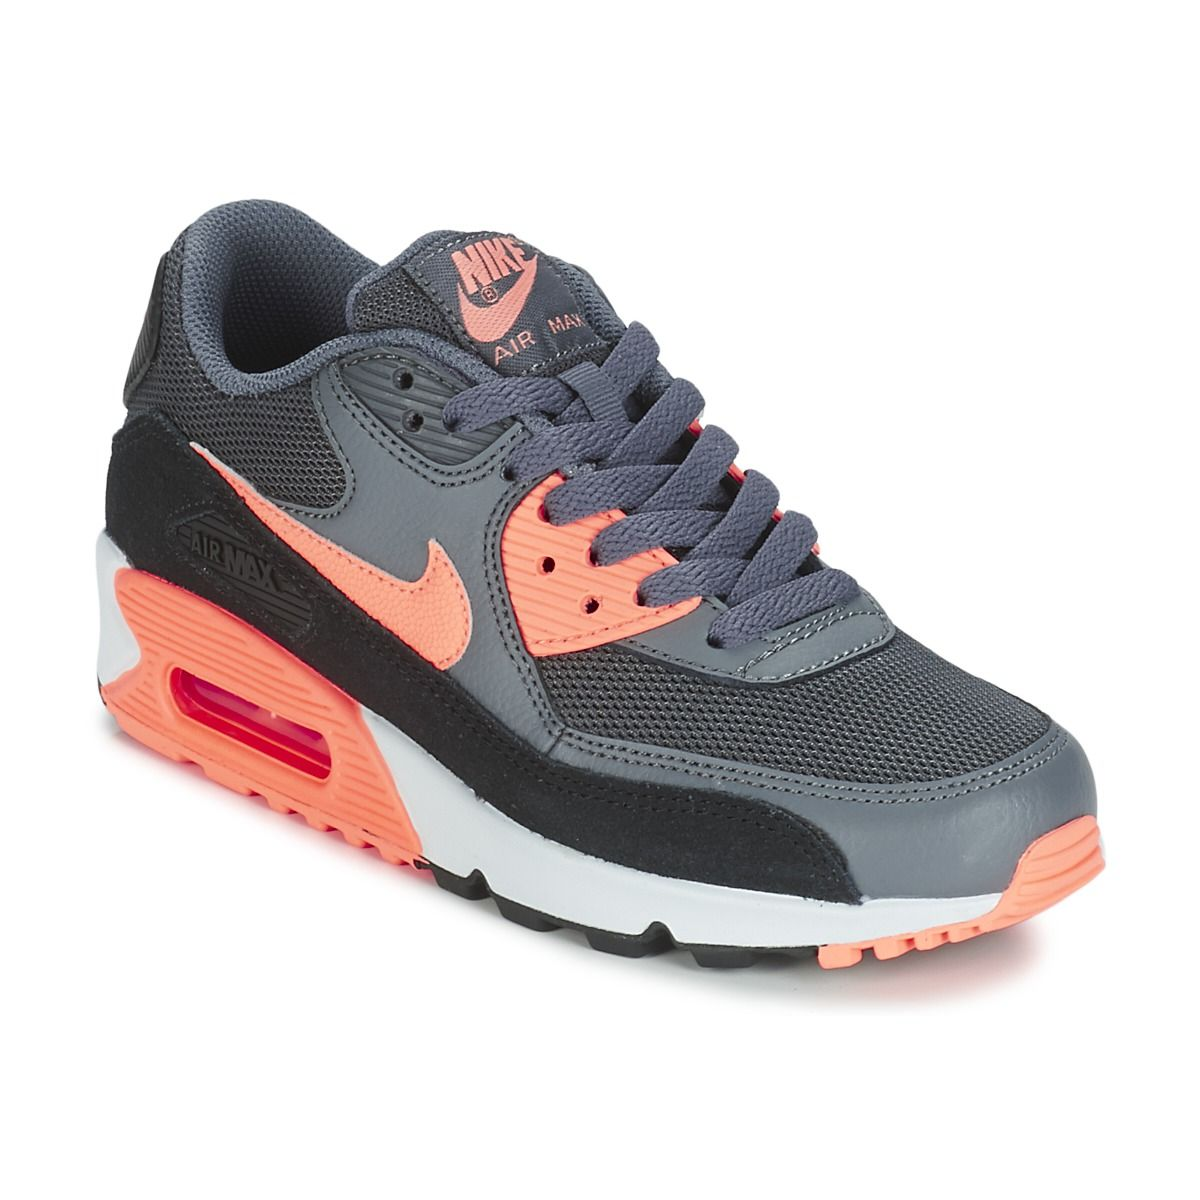 cheap for discount 5e5a5 3e5e1 Baskets basses Nike AIR MAX 90 ESSENTIAL W Gris   Corail prix promo Baskets  Femme Spartoo 139.00 €